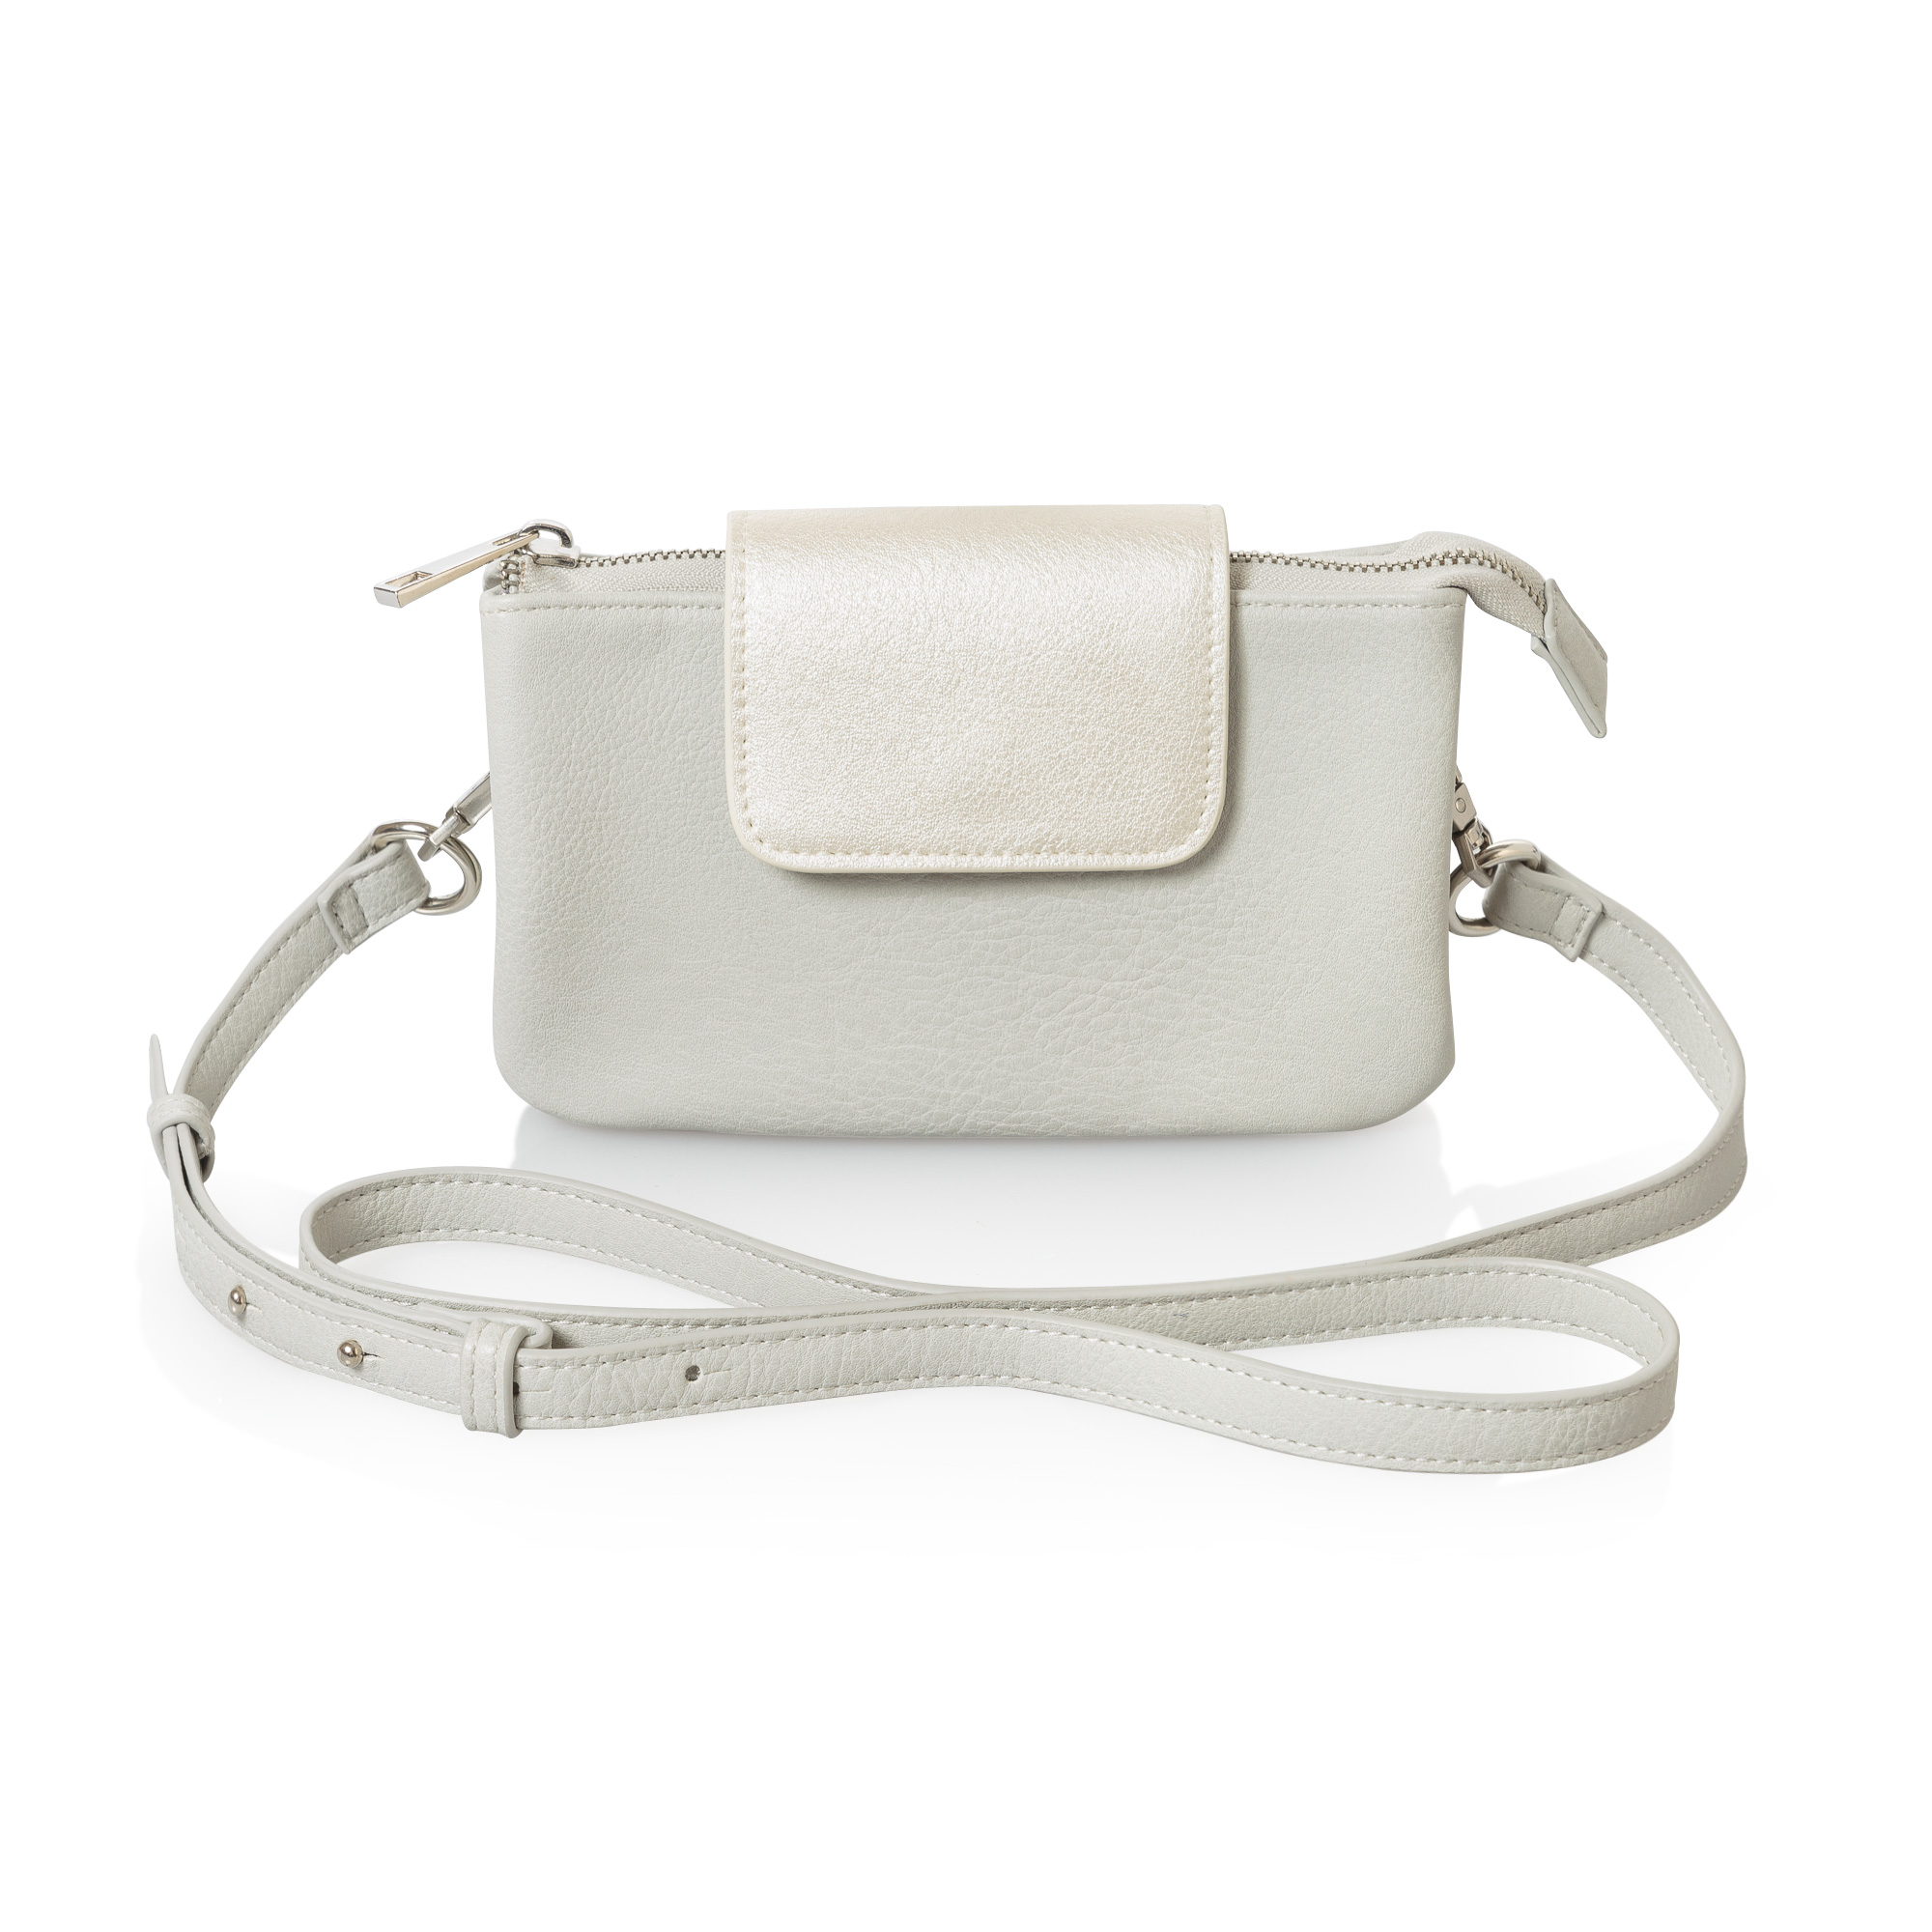 Silver Leather Tote Bag Uk - Helice functional cross body bag